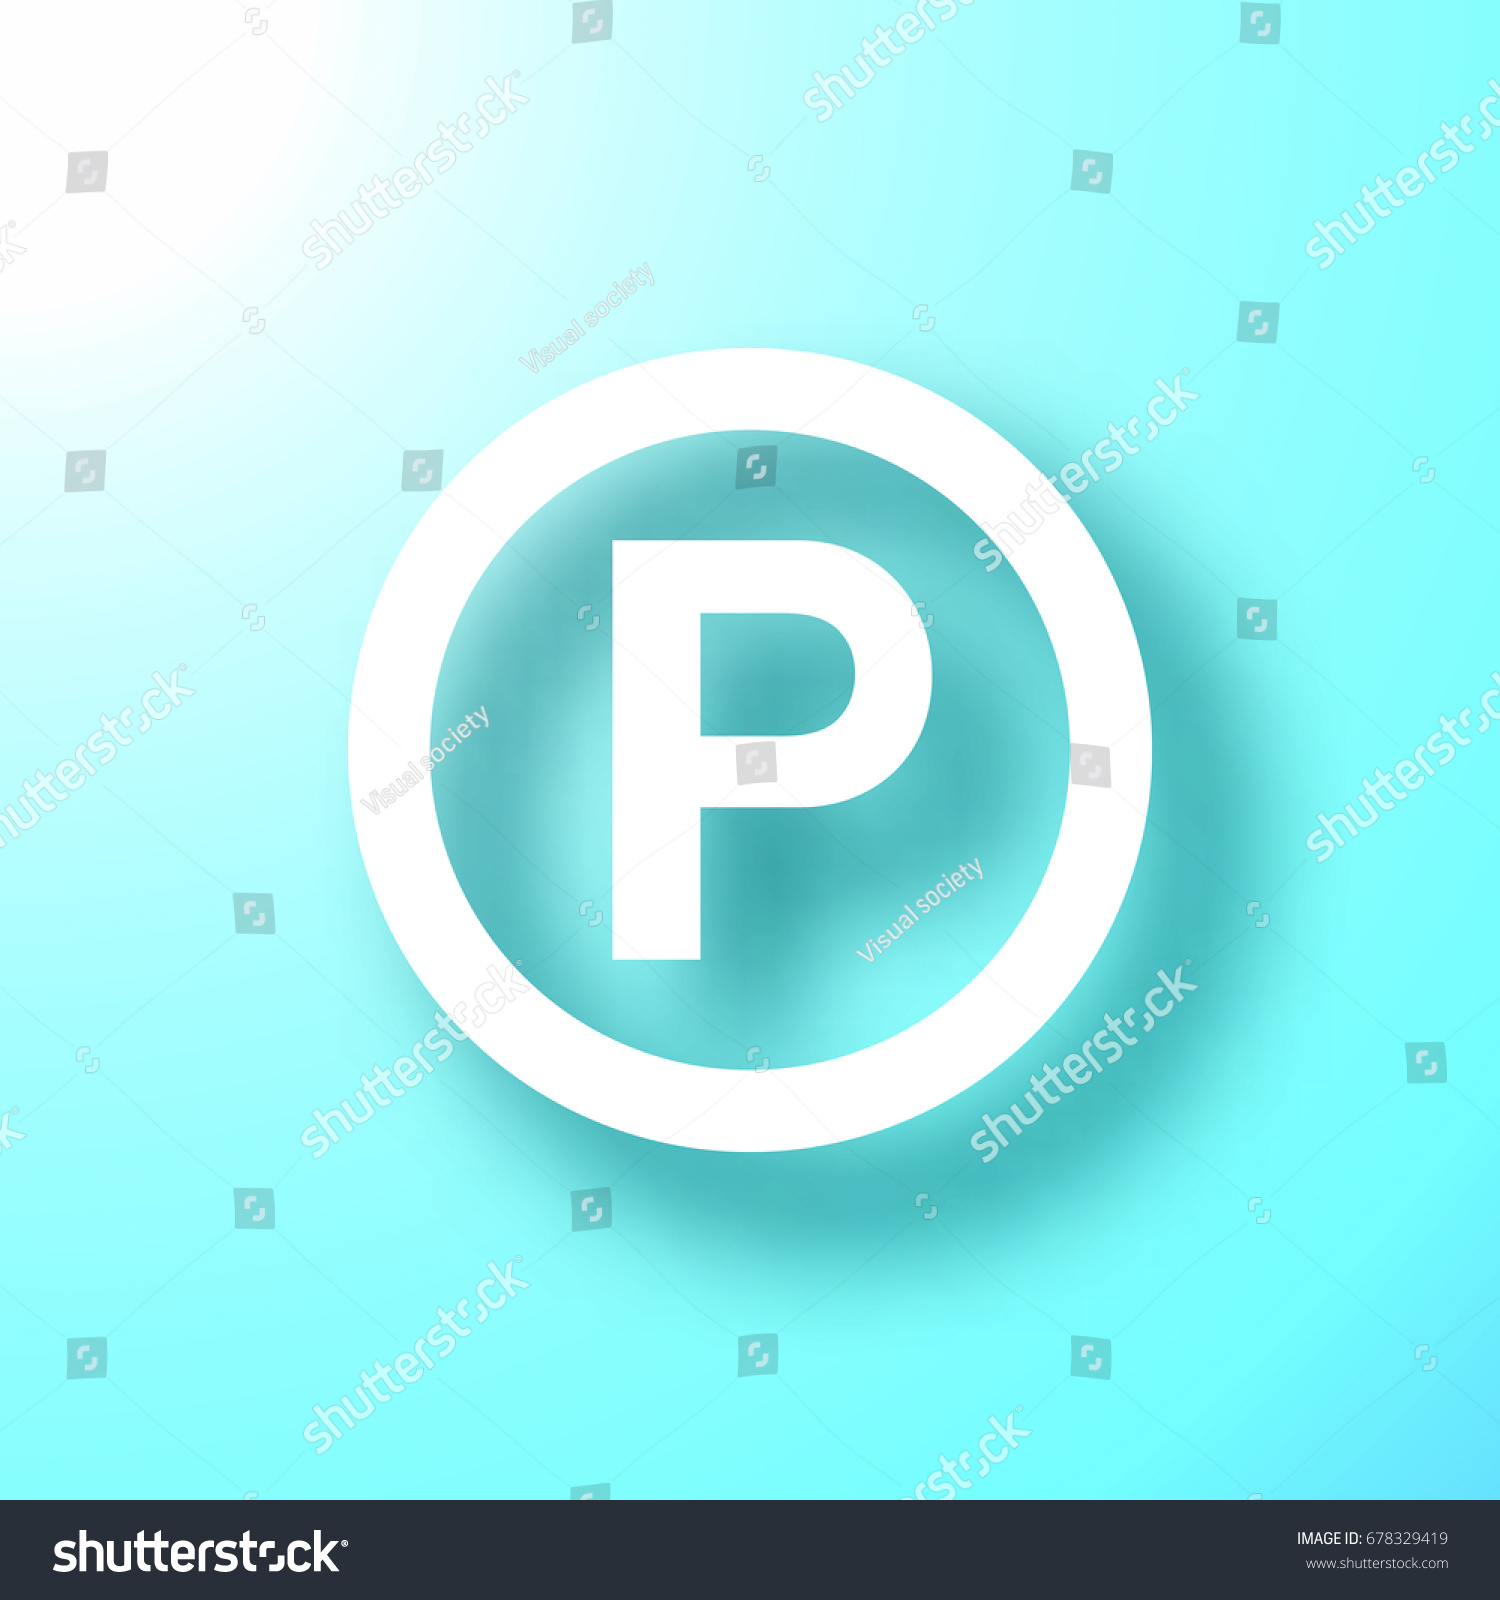 P sound recording copyright symbol isolated stock vector 678329419 p sound recording copyright symbol isolated on bright blue background with shadow vector illustration biocorpaavc